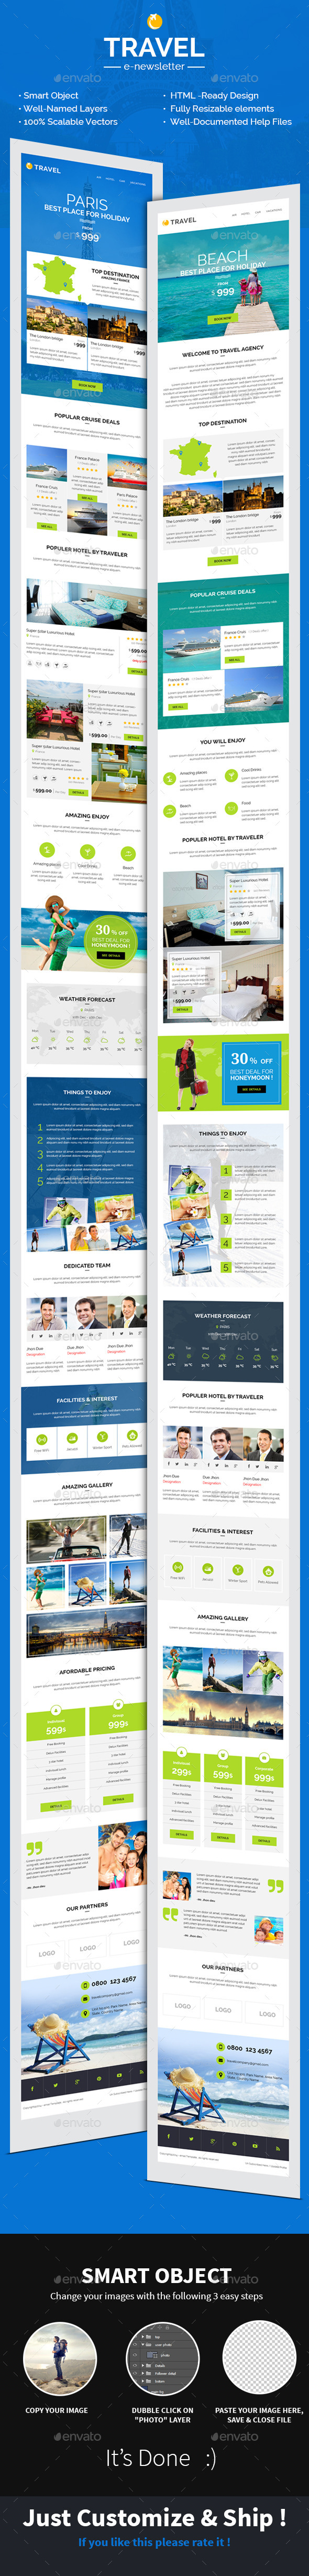 Travel Hotel E-newsletter PSD Template